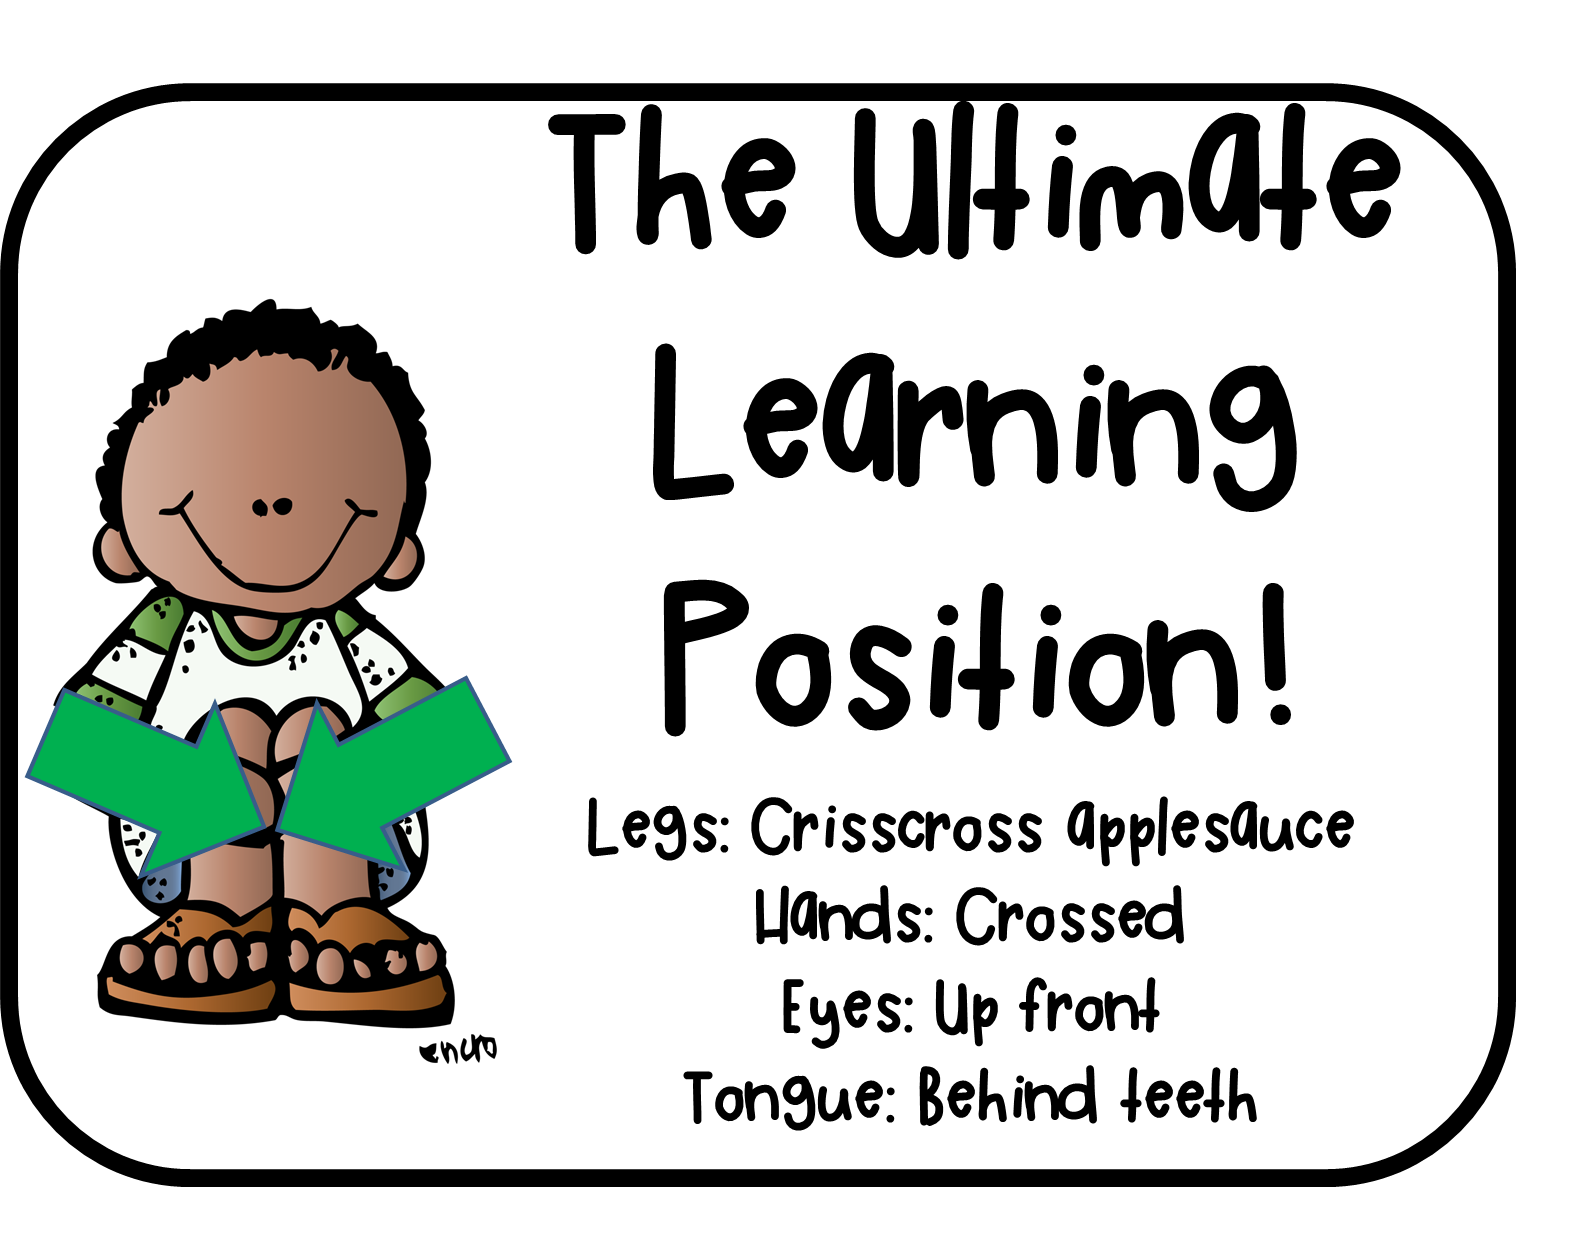 Sitting criss cross applesauce clipart clipart Welcome to The Schroeder Page!: Brain Gym and The Ultimate Learning ... clipart